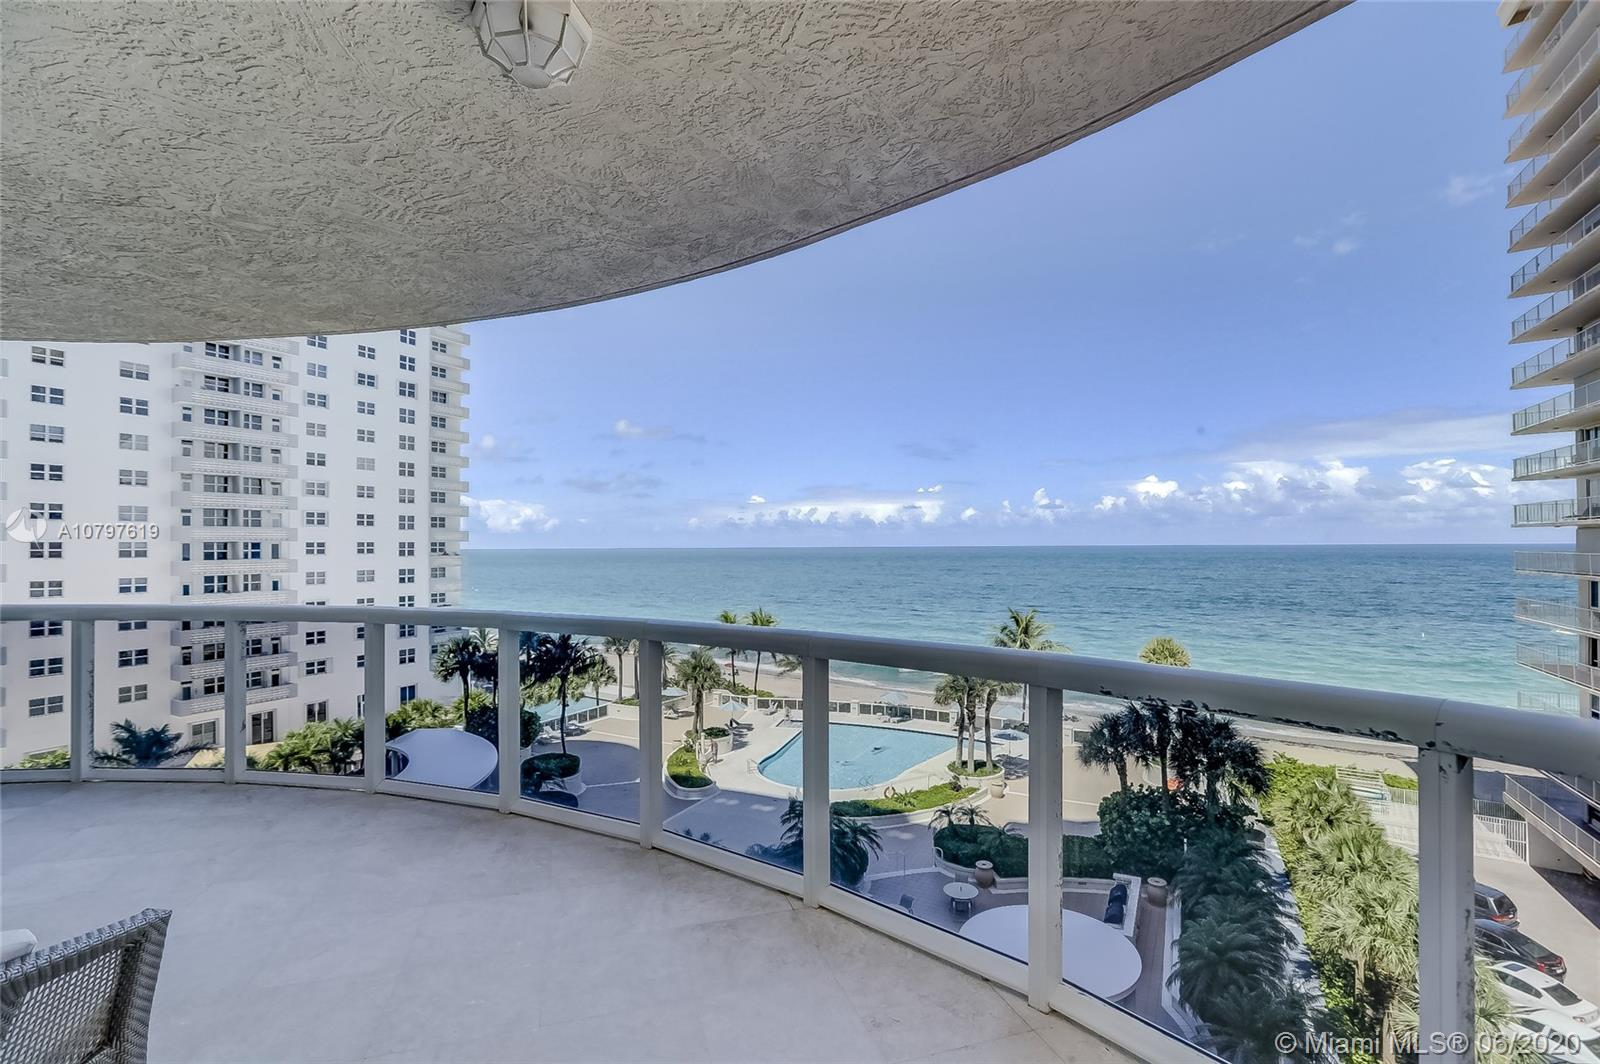 Amazing ocean front unit with direct ocean view in a luxury building. Unit has been completely remolded.  Brand new state of the art kitchen. New floors, New custom closets. New bathroom finishes. New Ac and water heater. Large balcony with direct ocean view. This unit needs nothing but a new owner. Move right in. Only unit currently for sale in the building.